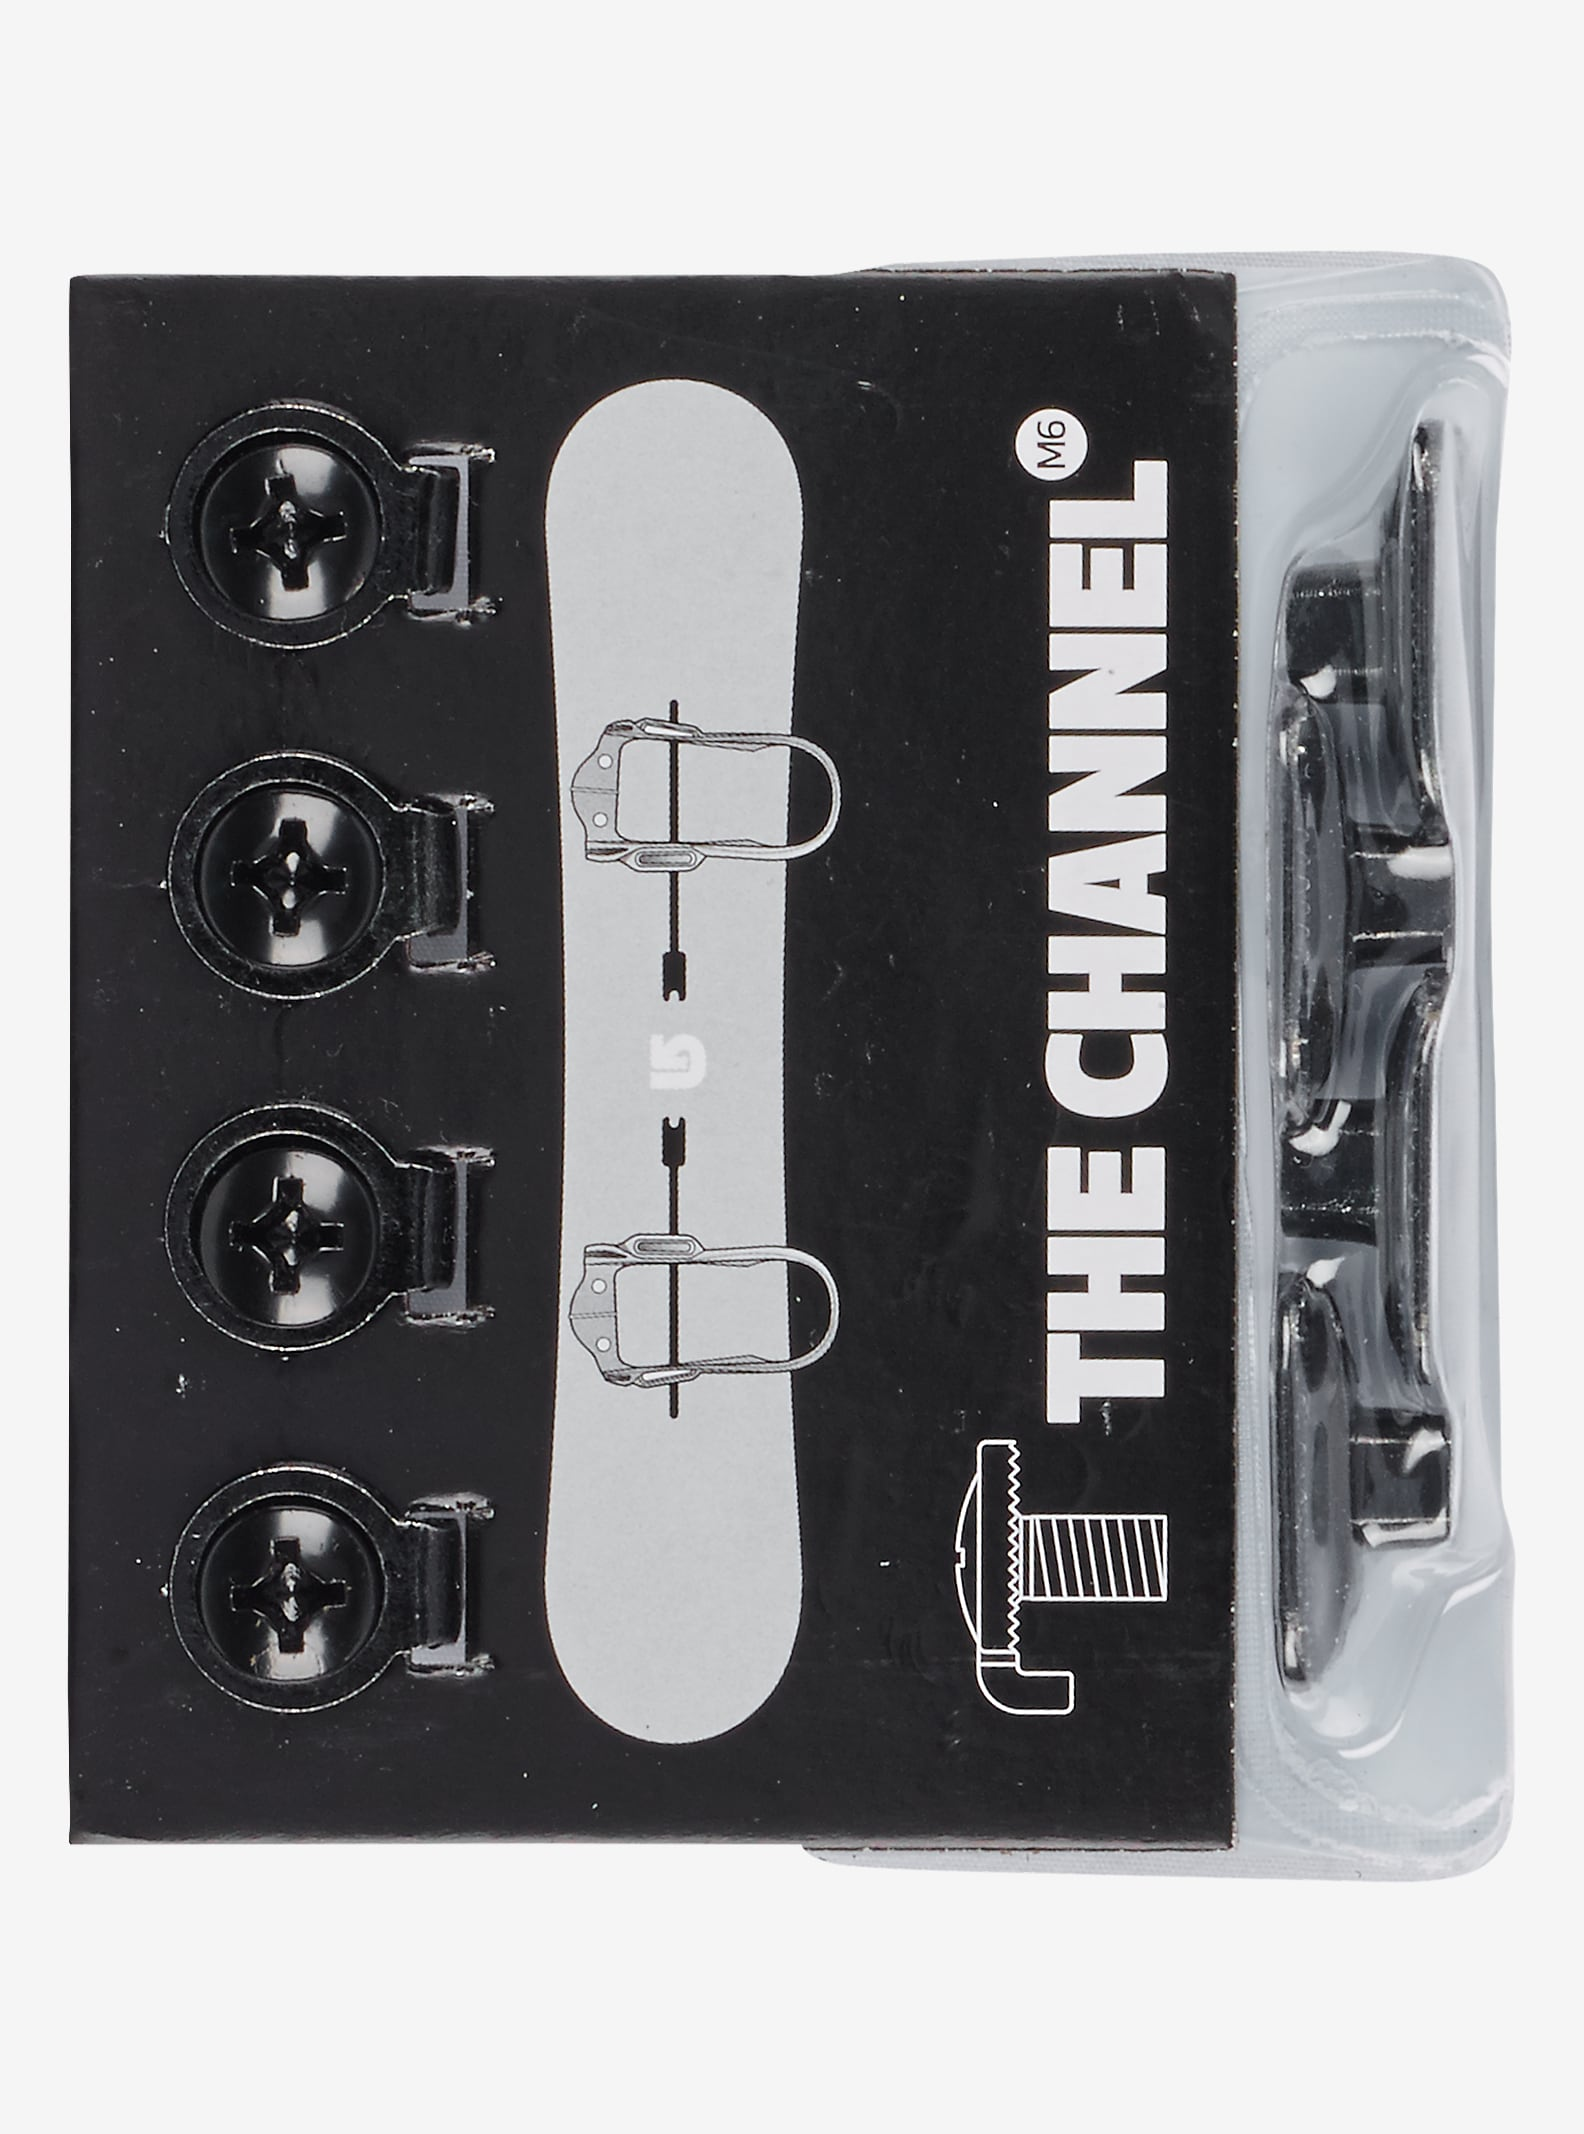 Burton M6 Channel Replacement Hardware shown in Black